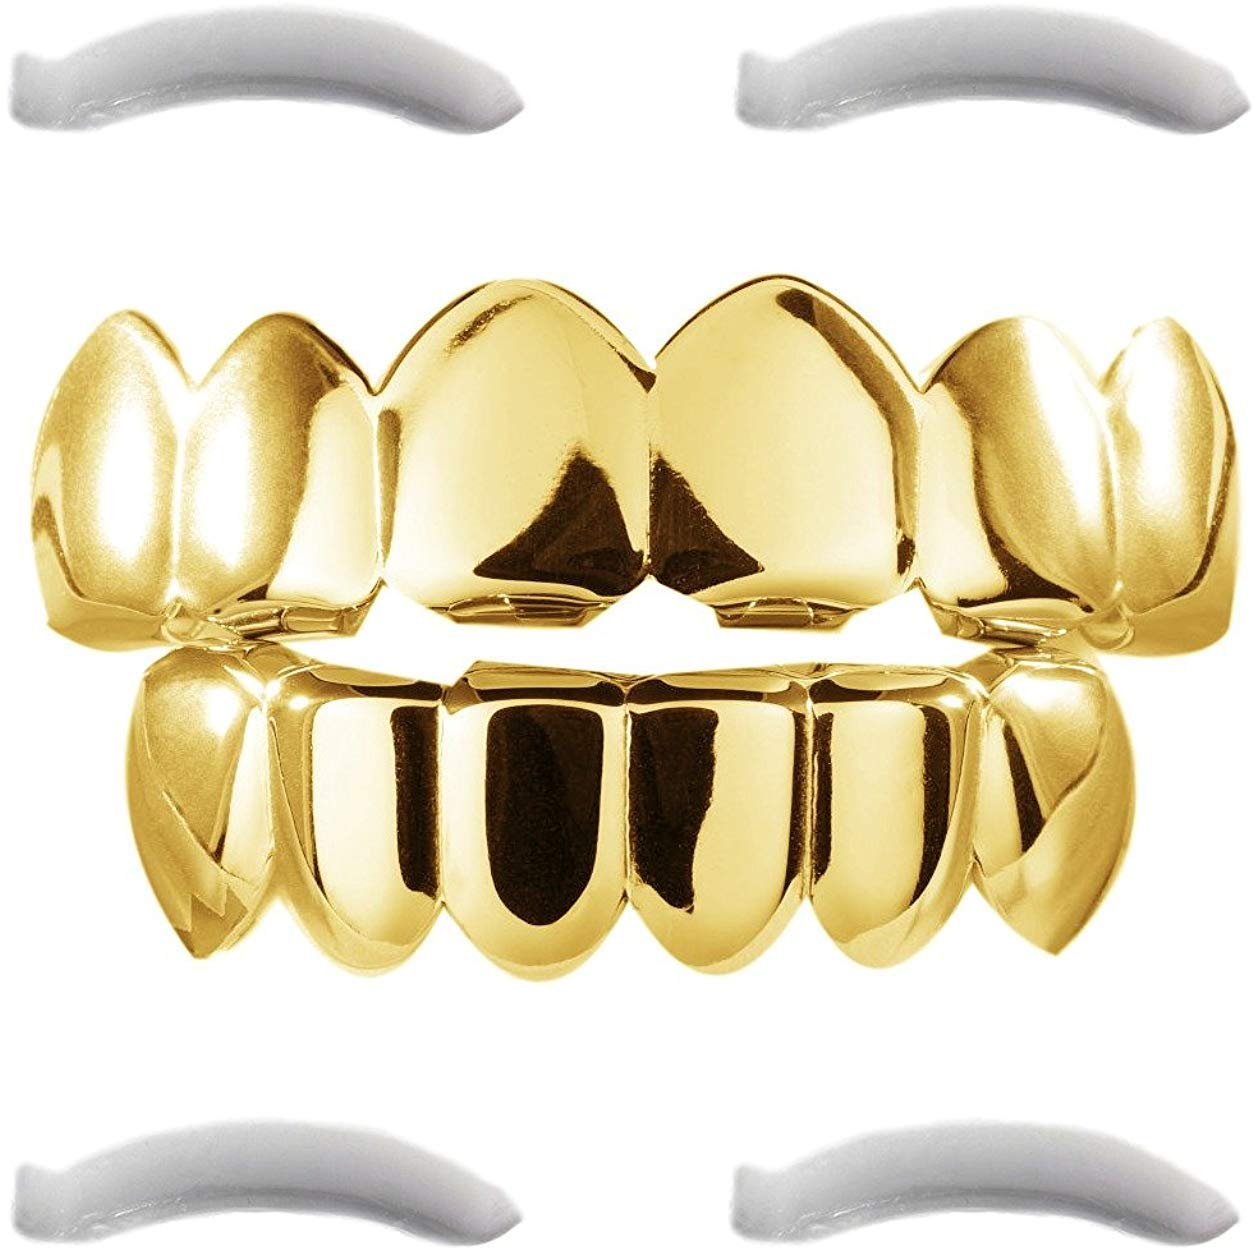 24K Plated Gold Grillz for Men and Women | Mouth Top Bottom Hip Hop Teeth Grills | + 2 Extra Molding Bars + 1 Microfiber Cloth